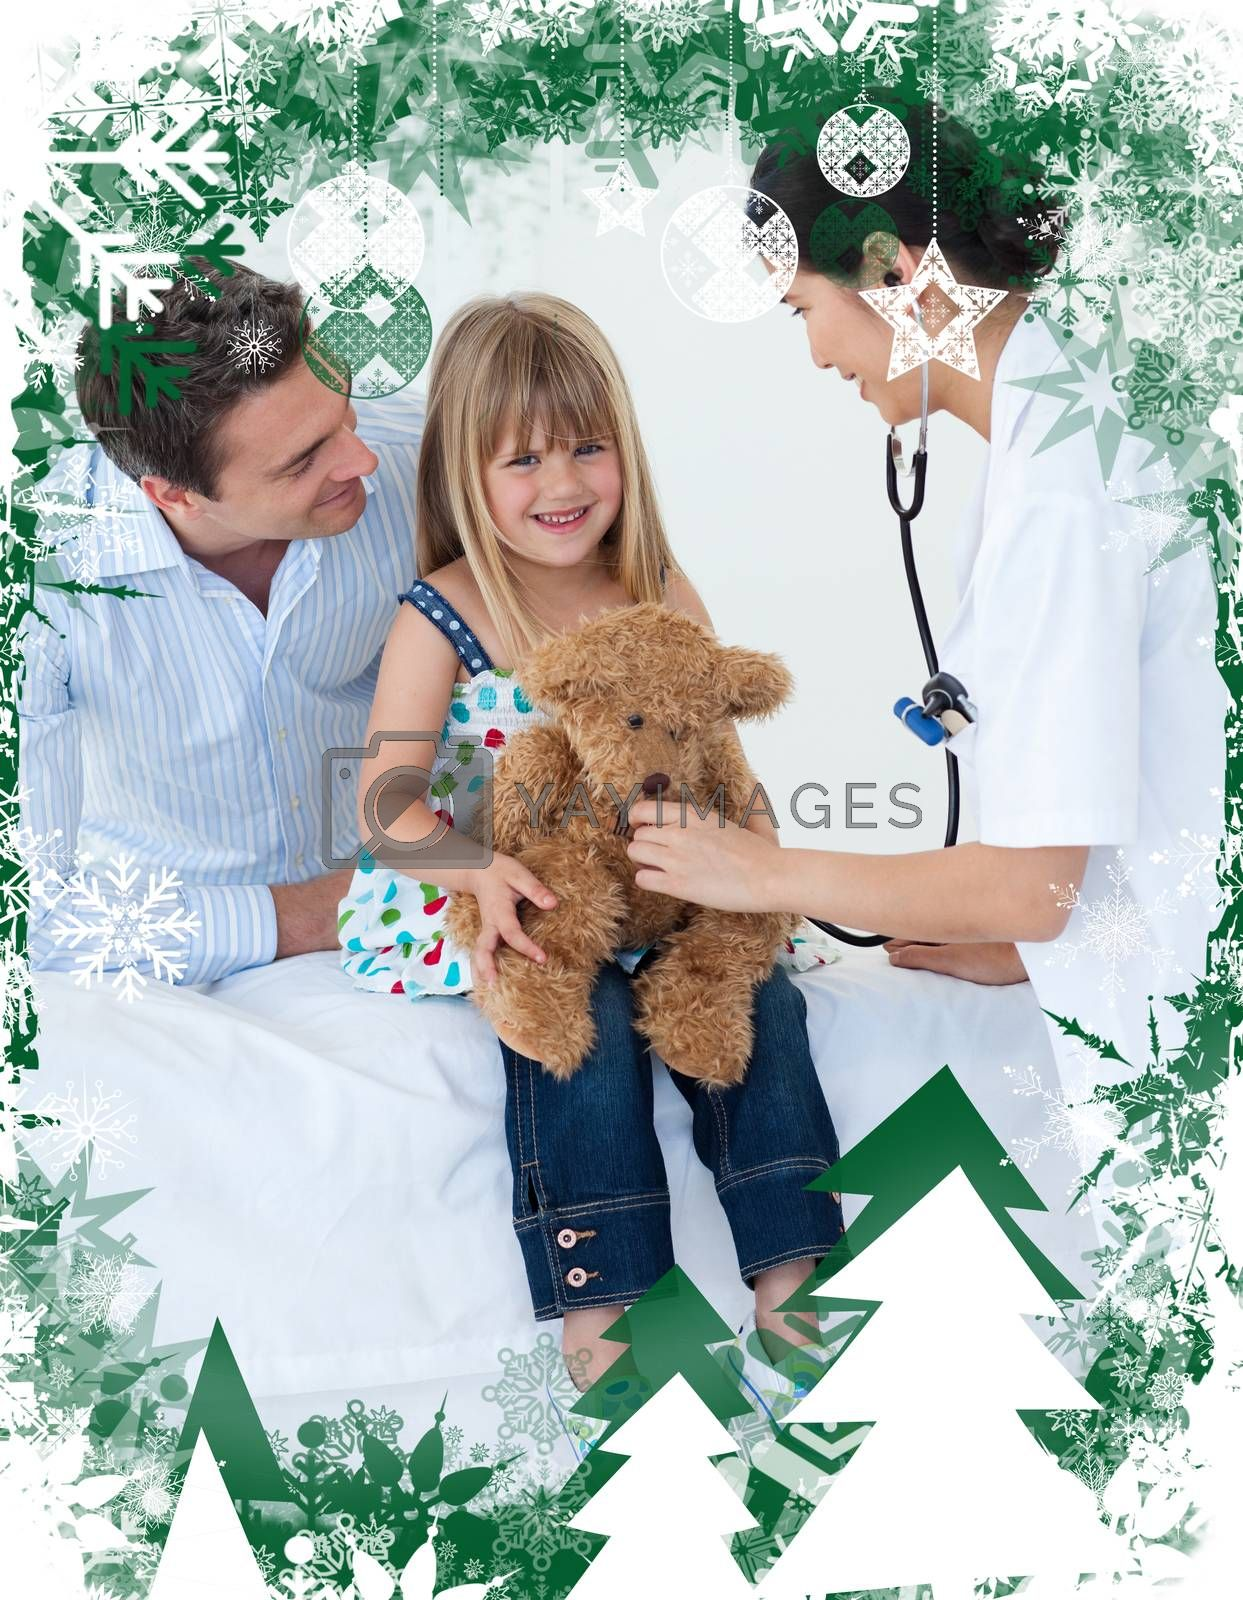 Female doctor and happy little girl examing a teddy bear against christmas themed frame